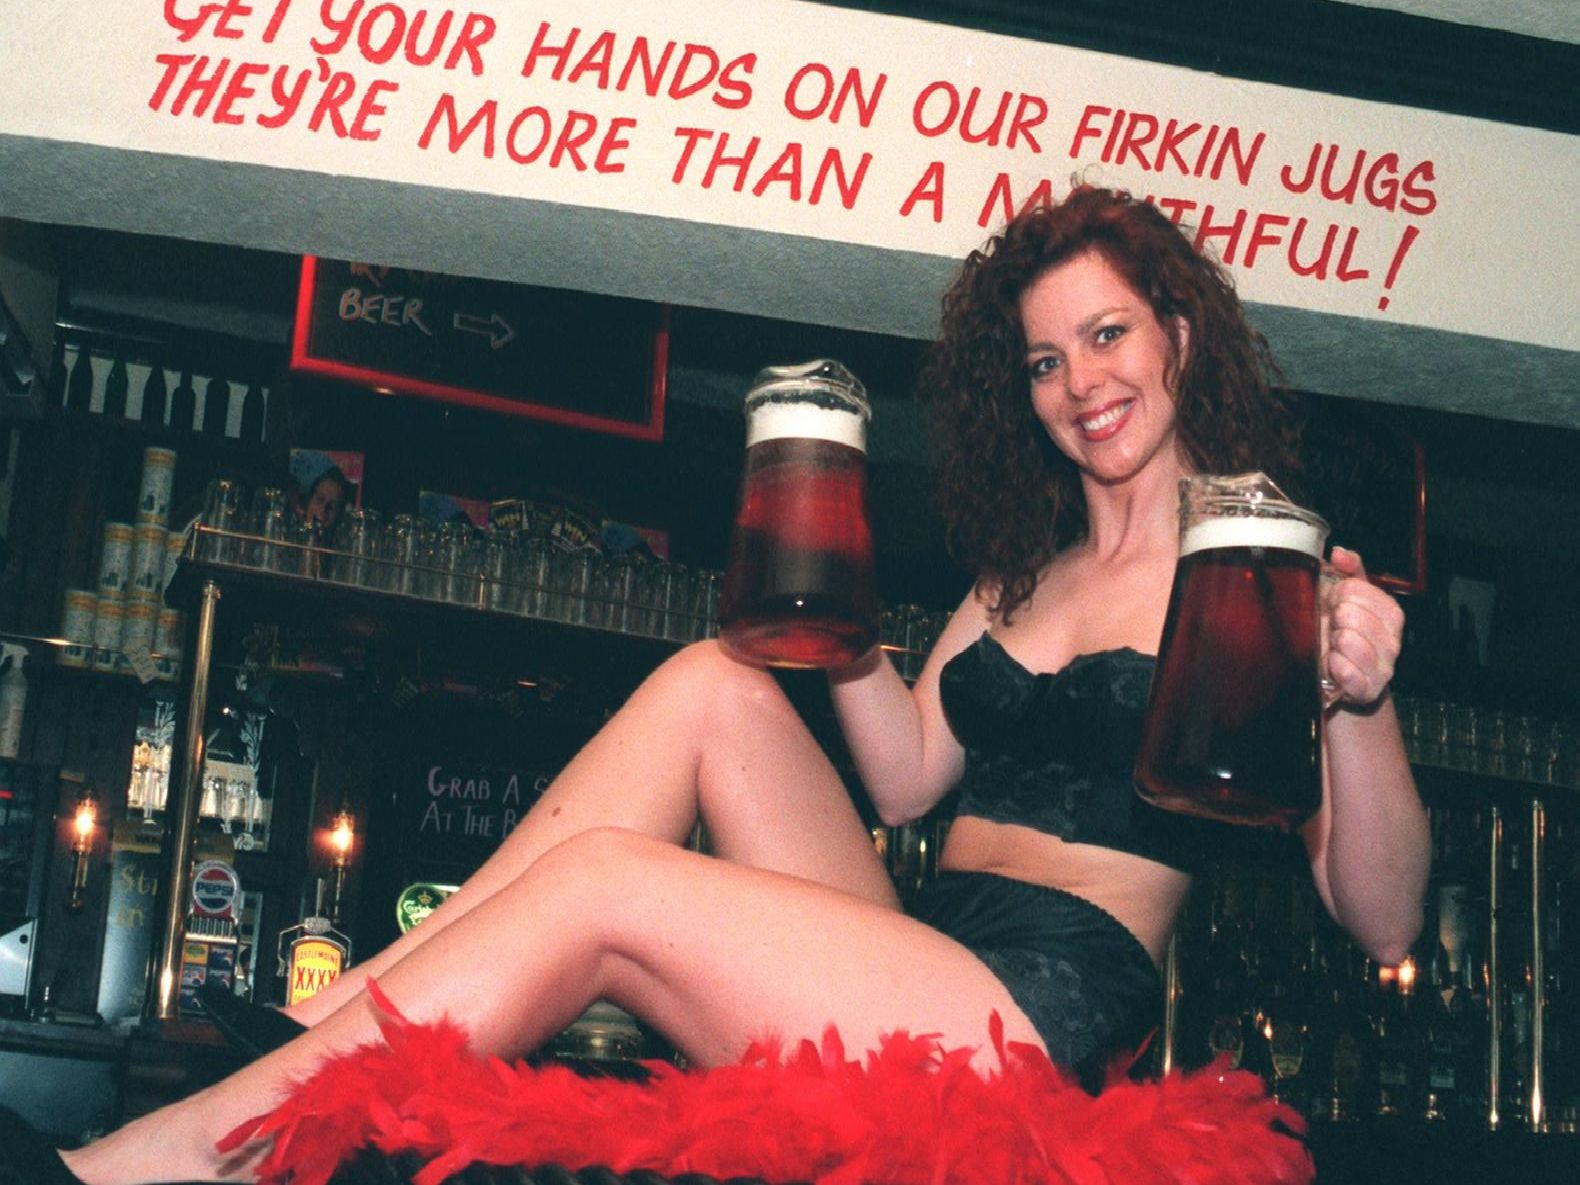 This Sheffield pub used some rather risque slogans (and gimmicks) to draw in drinkers.